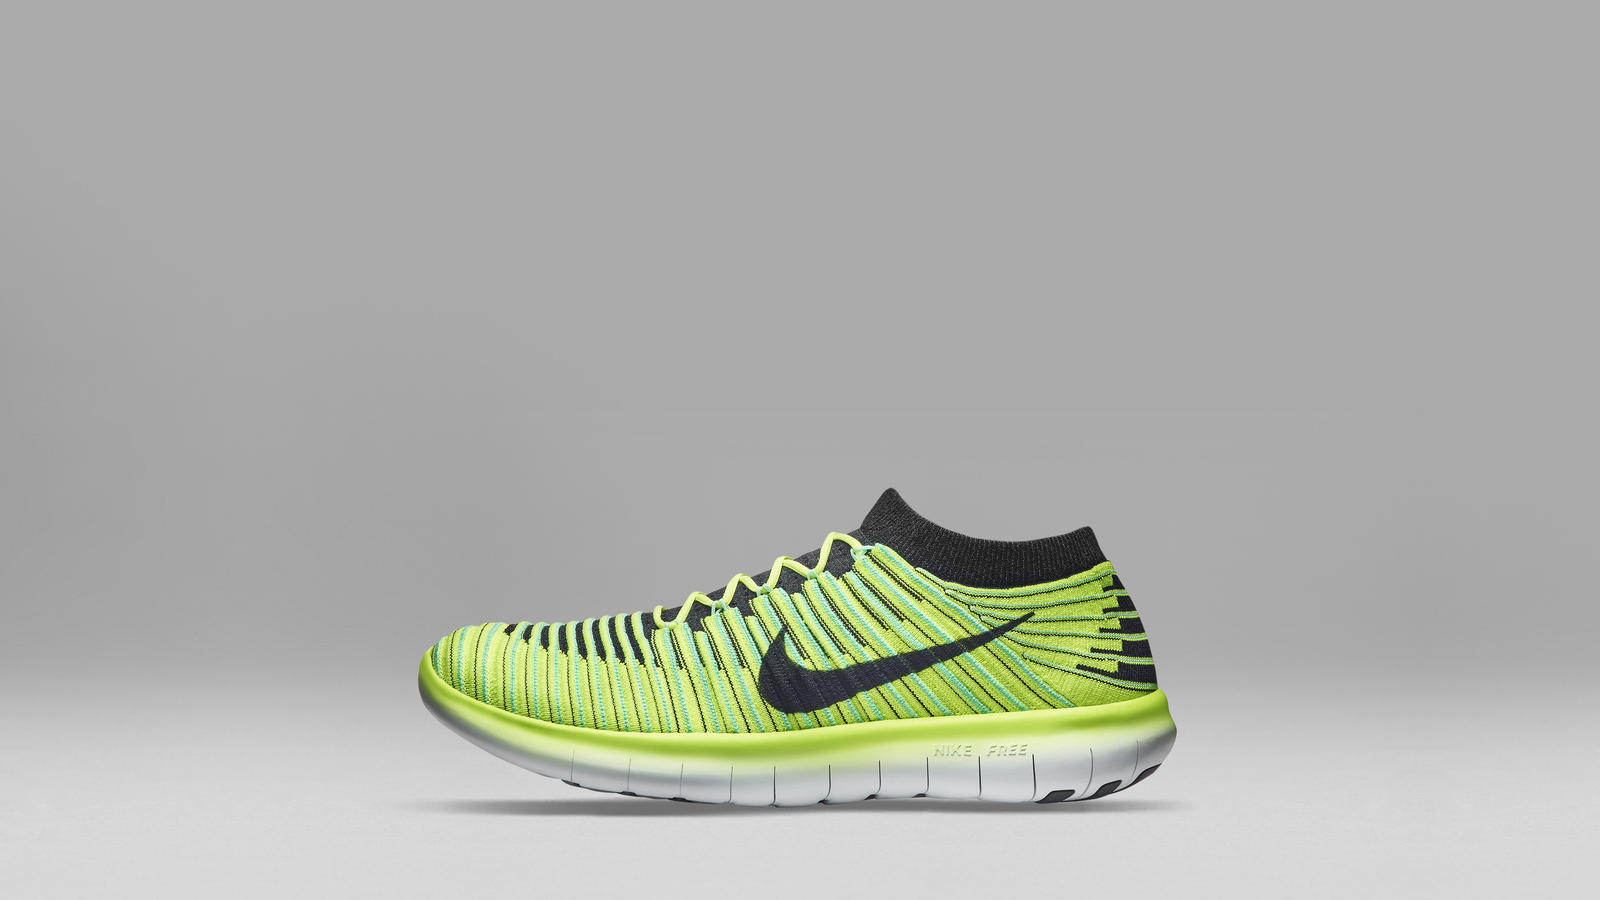 96bea8457ff Nike Free RN Motion Flyknit Evolves the Nike Free Legacy - Nike News